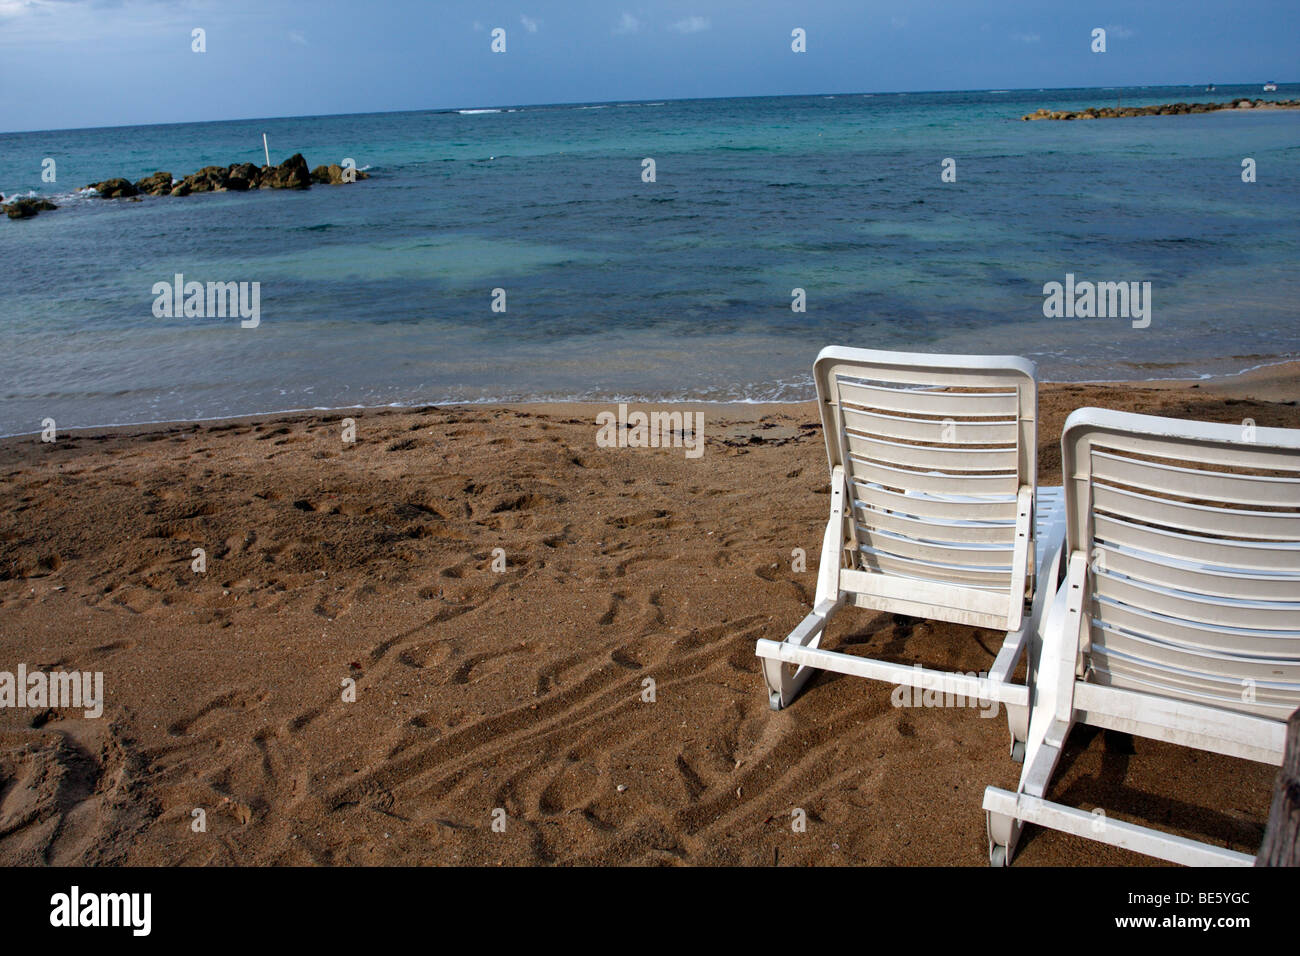 Beach Lounge Chairs Empty Beach Lounge Chairs On The Sand By A Calm Sea Stock Photo